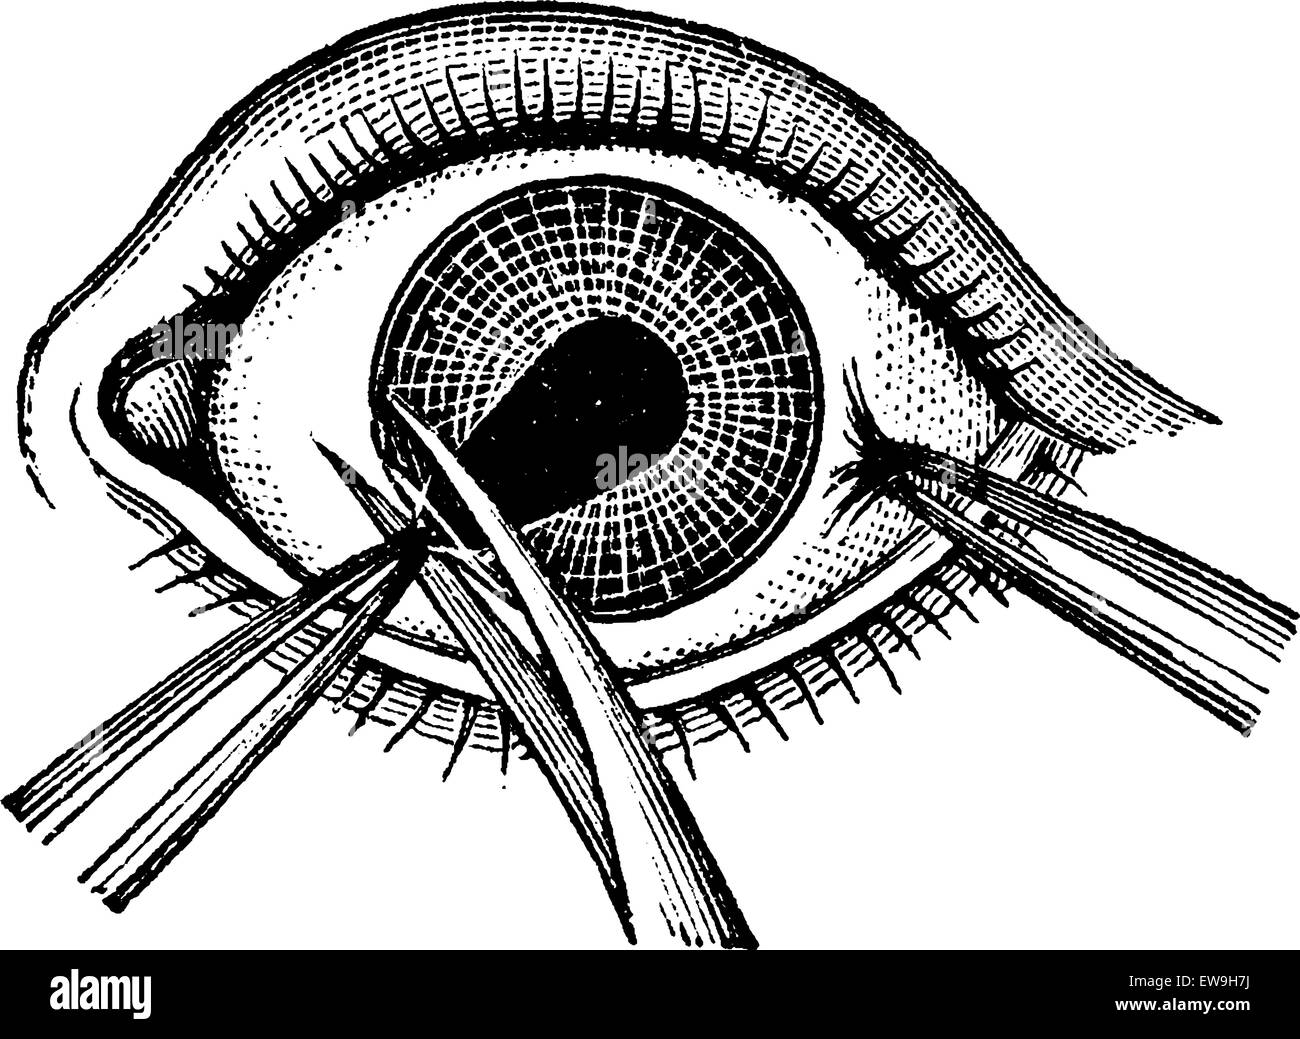 Iridectomy, showing pincers removing a flap of the iris, vintage engraved illustration. Usual Medicine Dictionary - Stock Vector